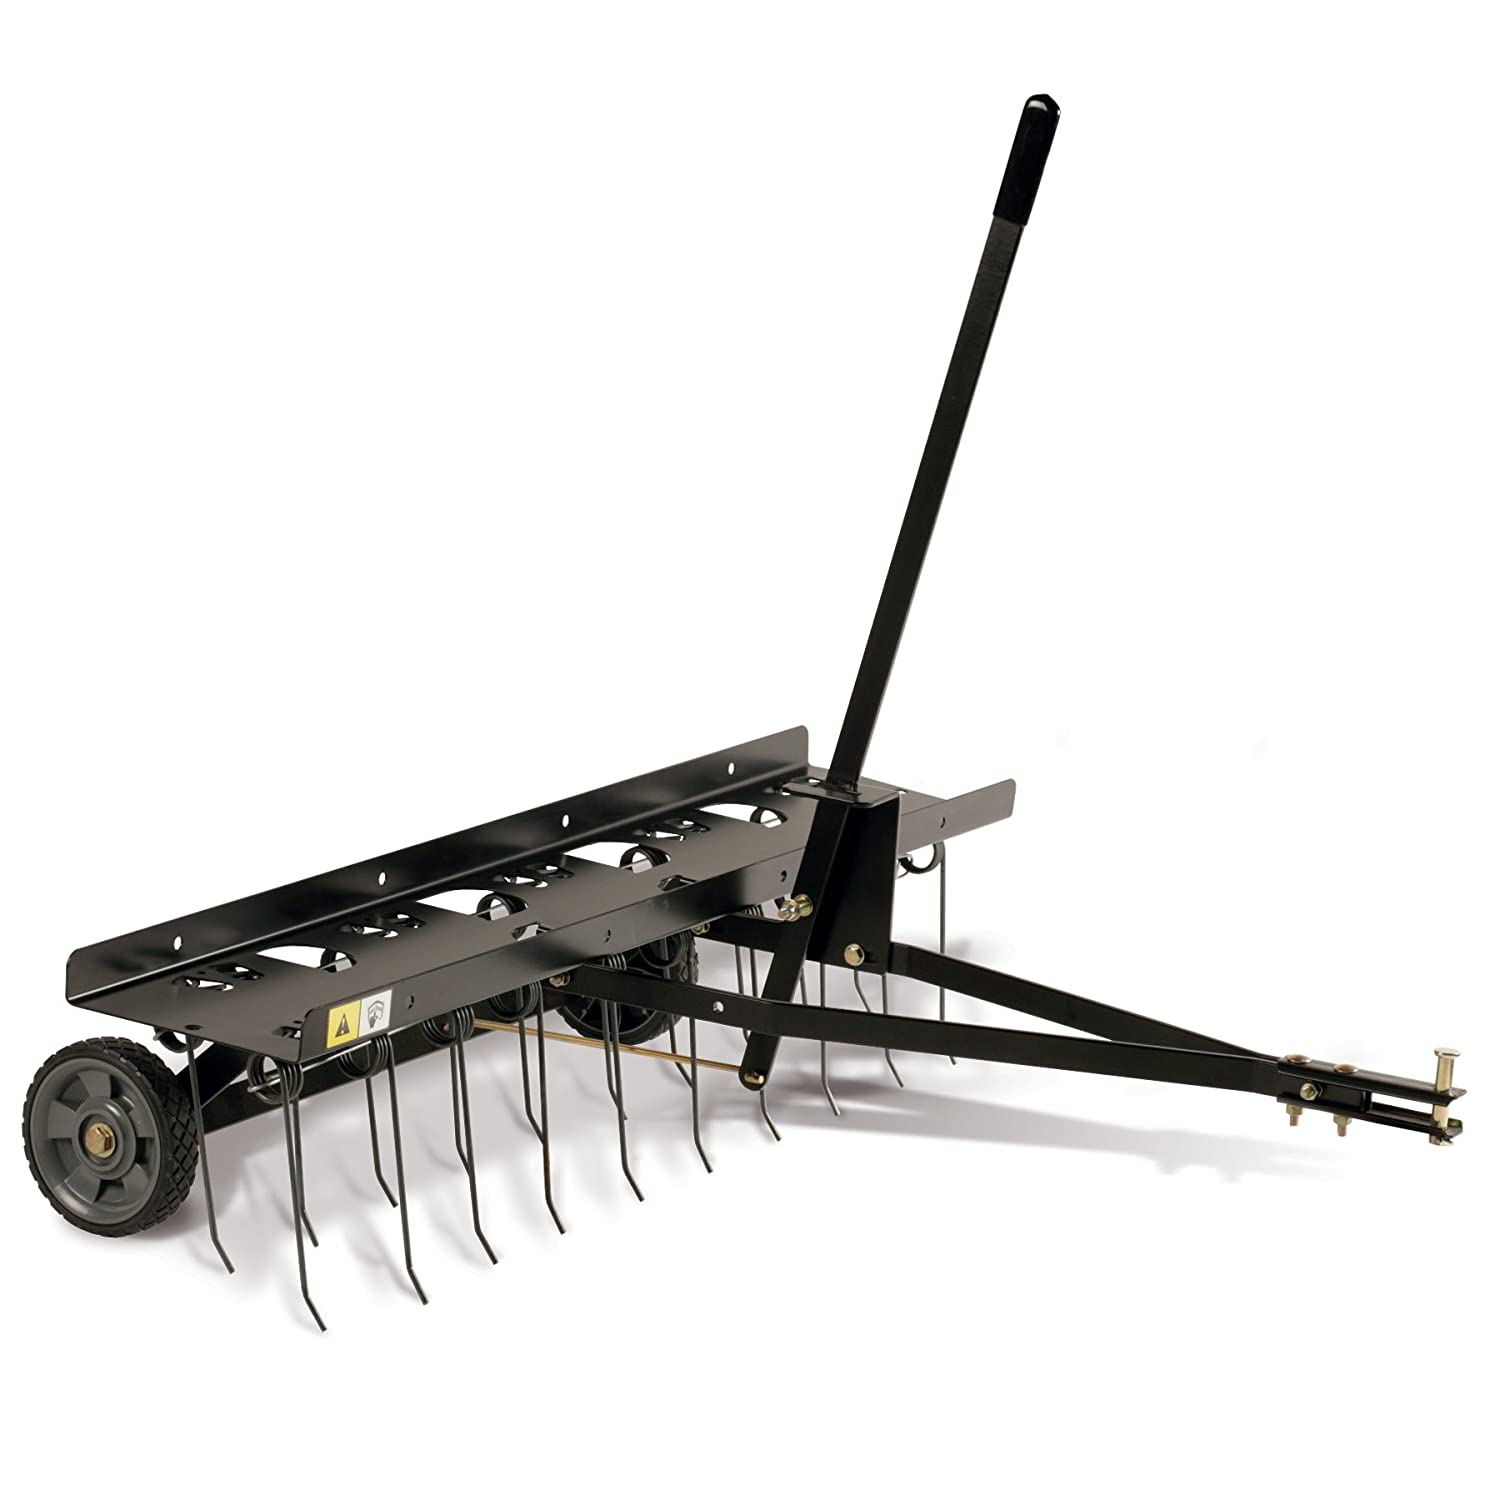 Lawn sweeper tow behind craftsman lawn mower accessories view